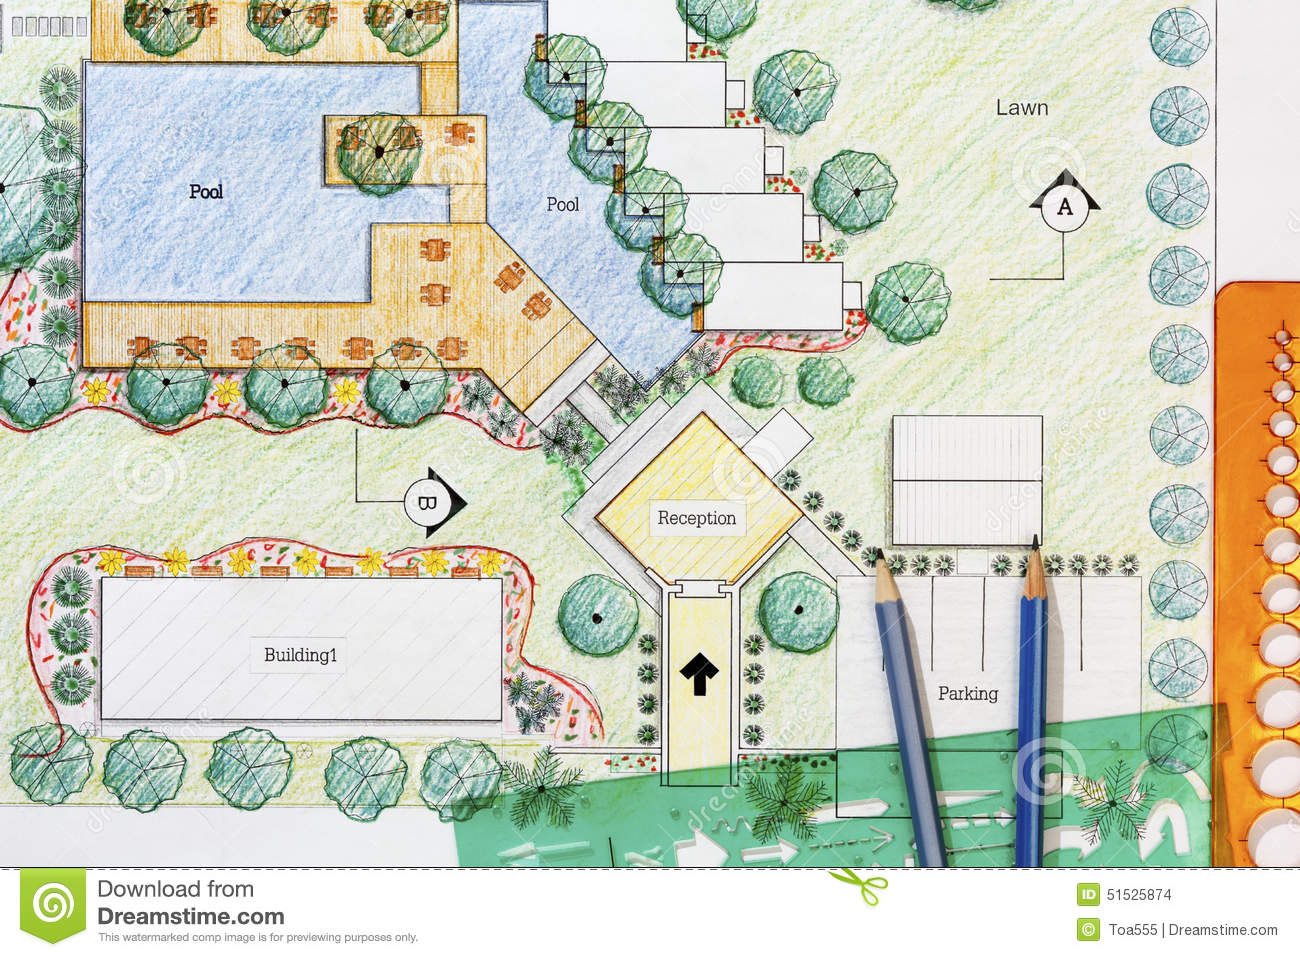 Landscape architect design hotel resort plan stock photo image of landscape architect design hotel resort plan drawing business malvernweather